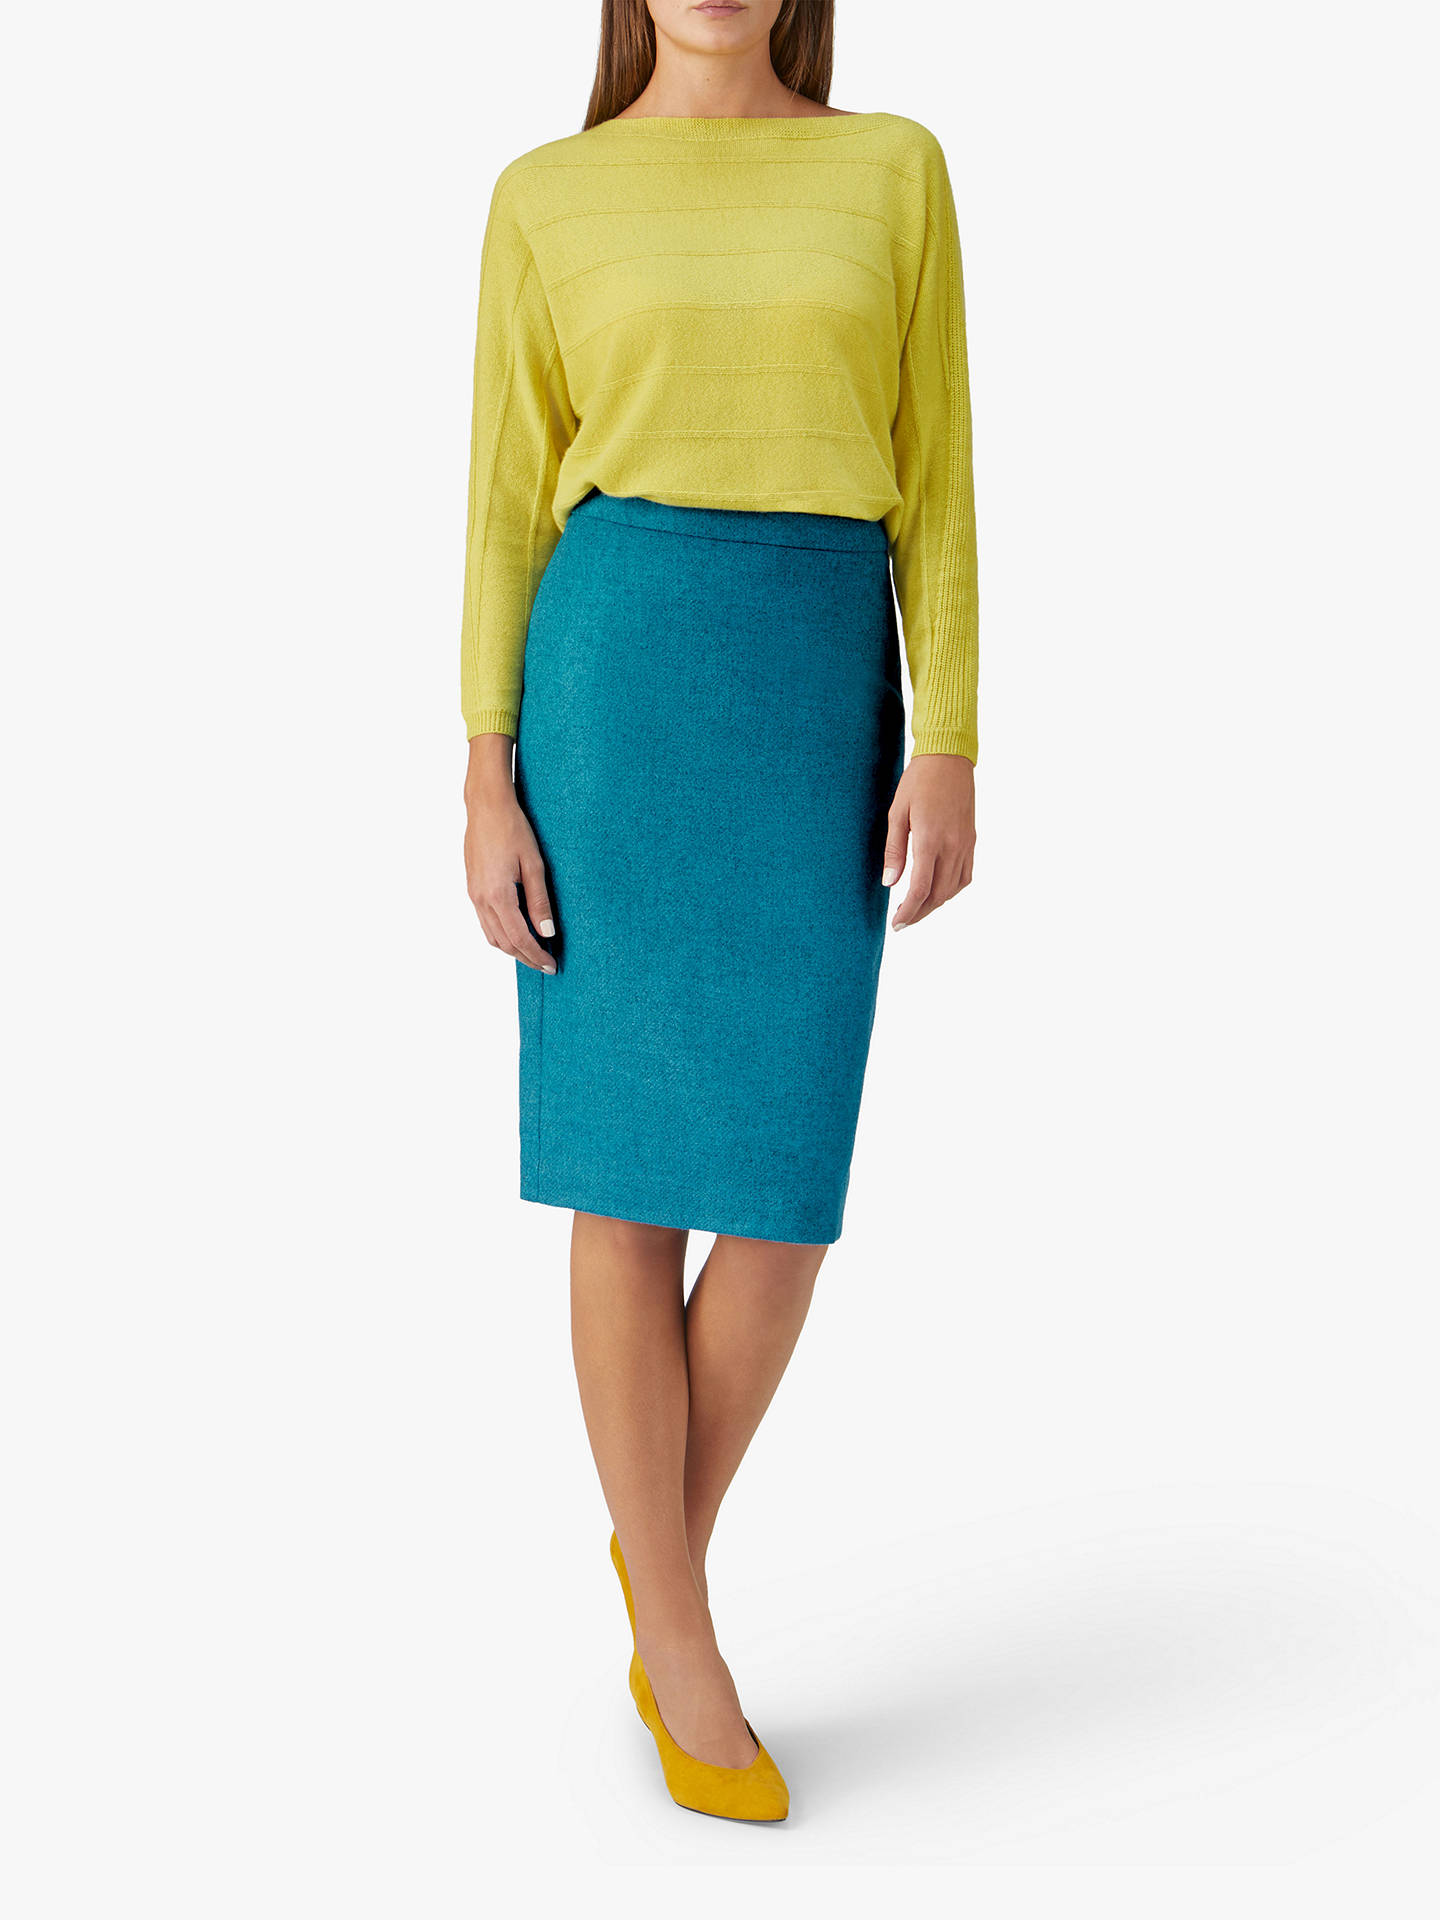 BuyPure Collection Wool Pencil Skirt, Bright Turquoise, 12 Online at johnlewis.com